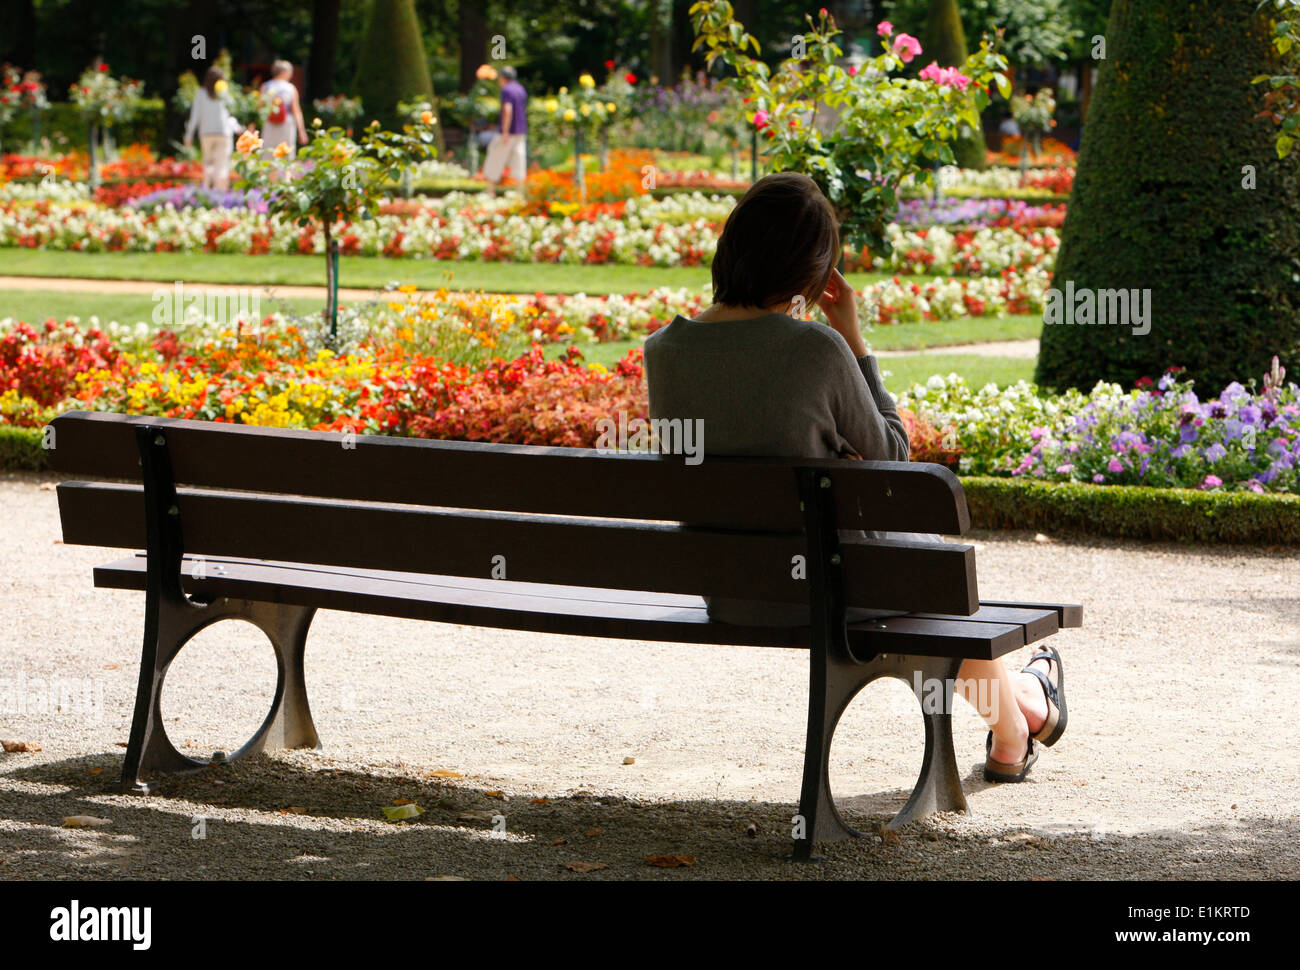 Woman siting on a bench - Stock Image